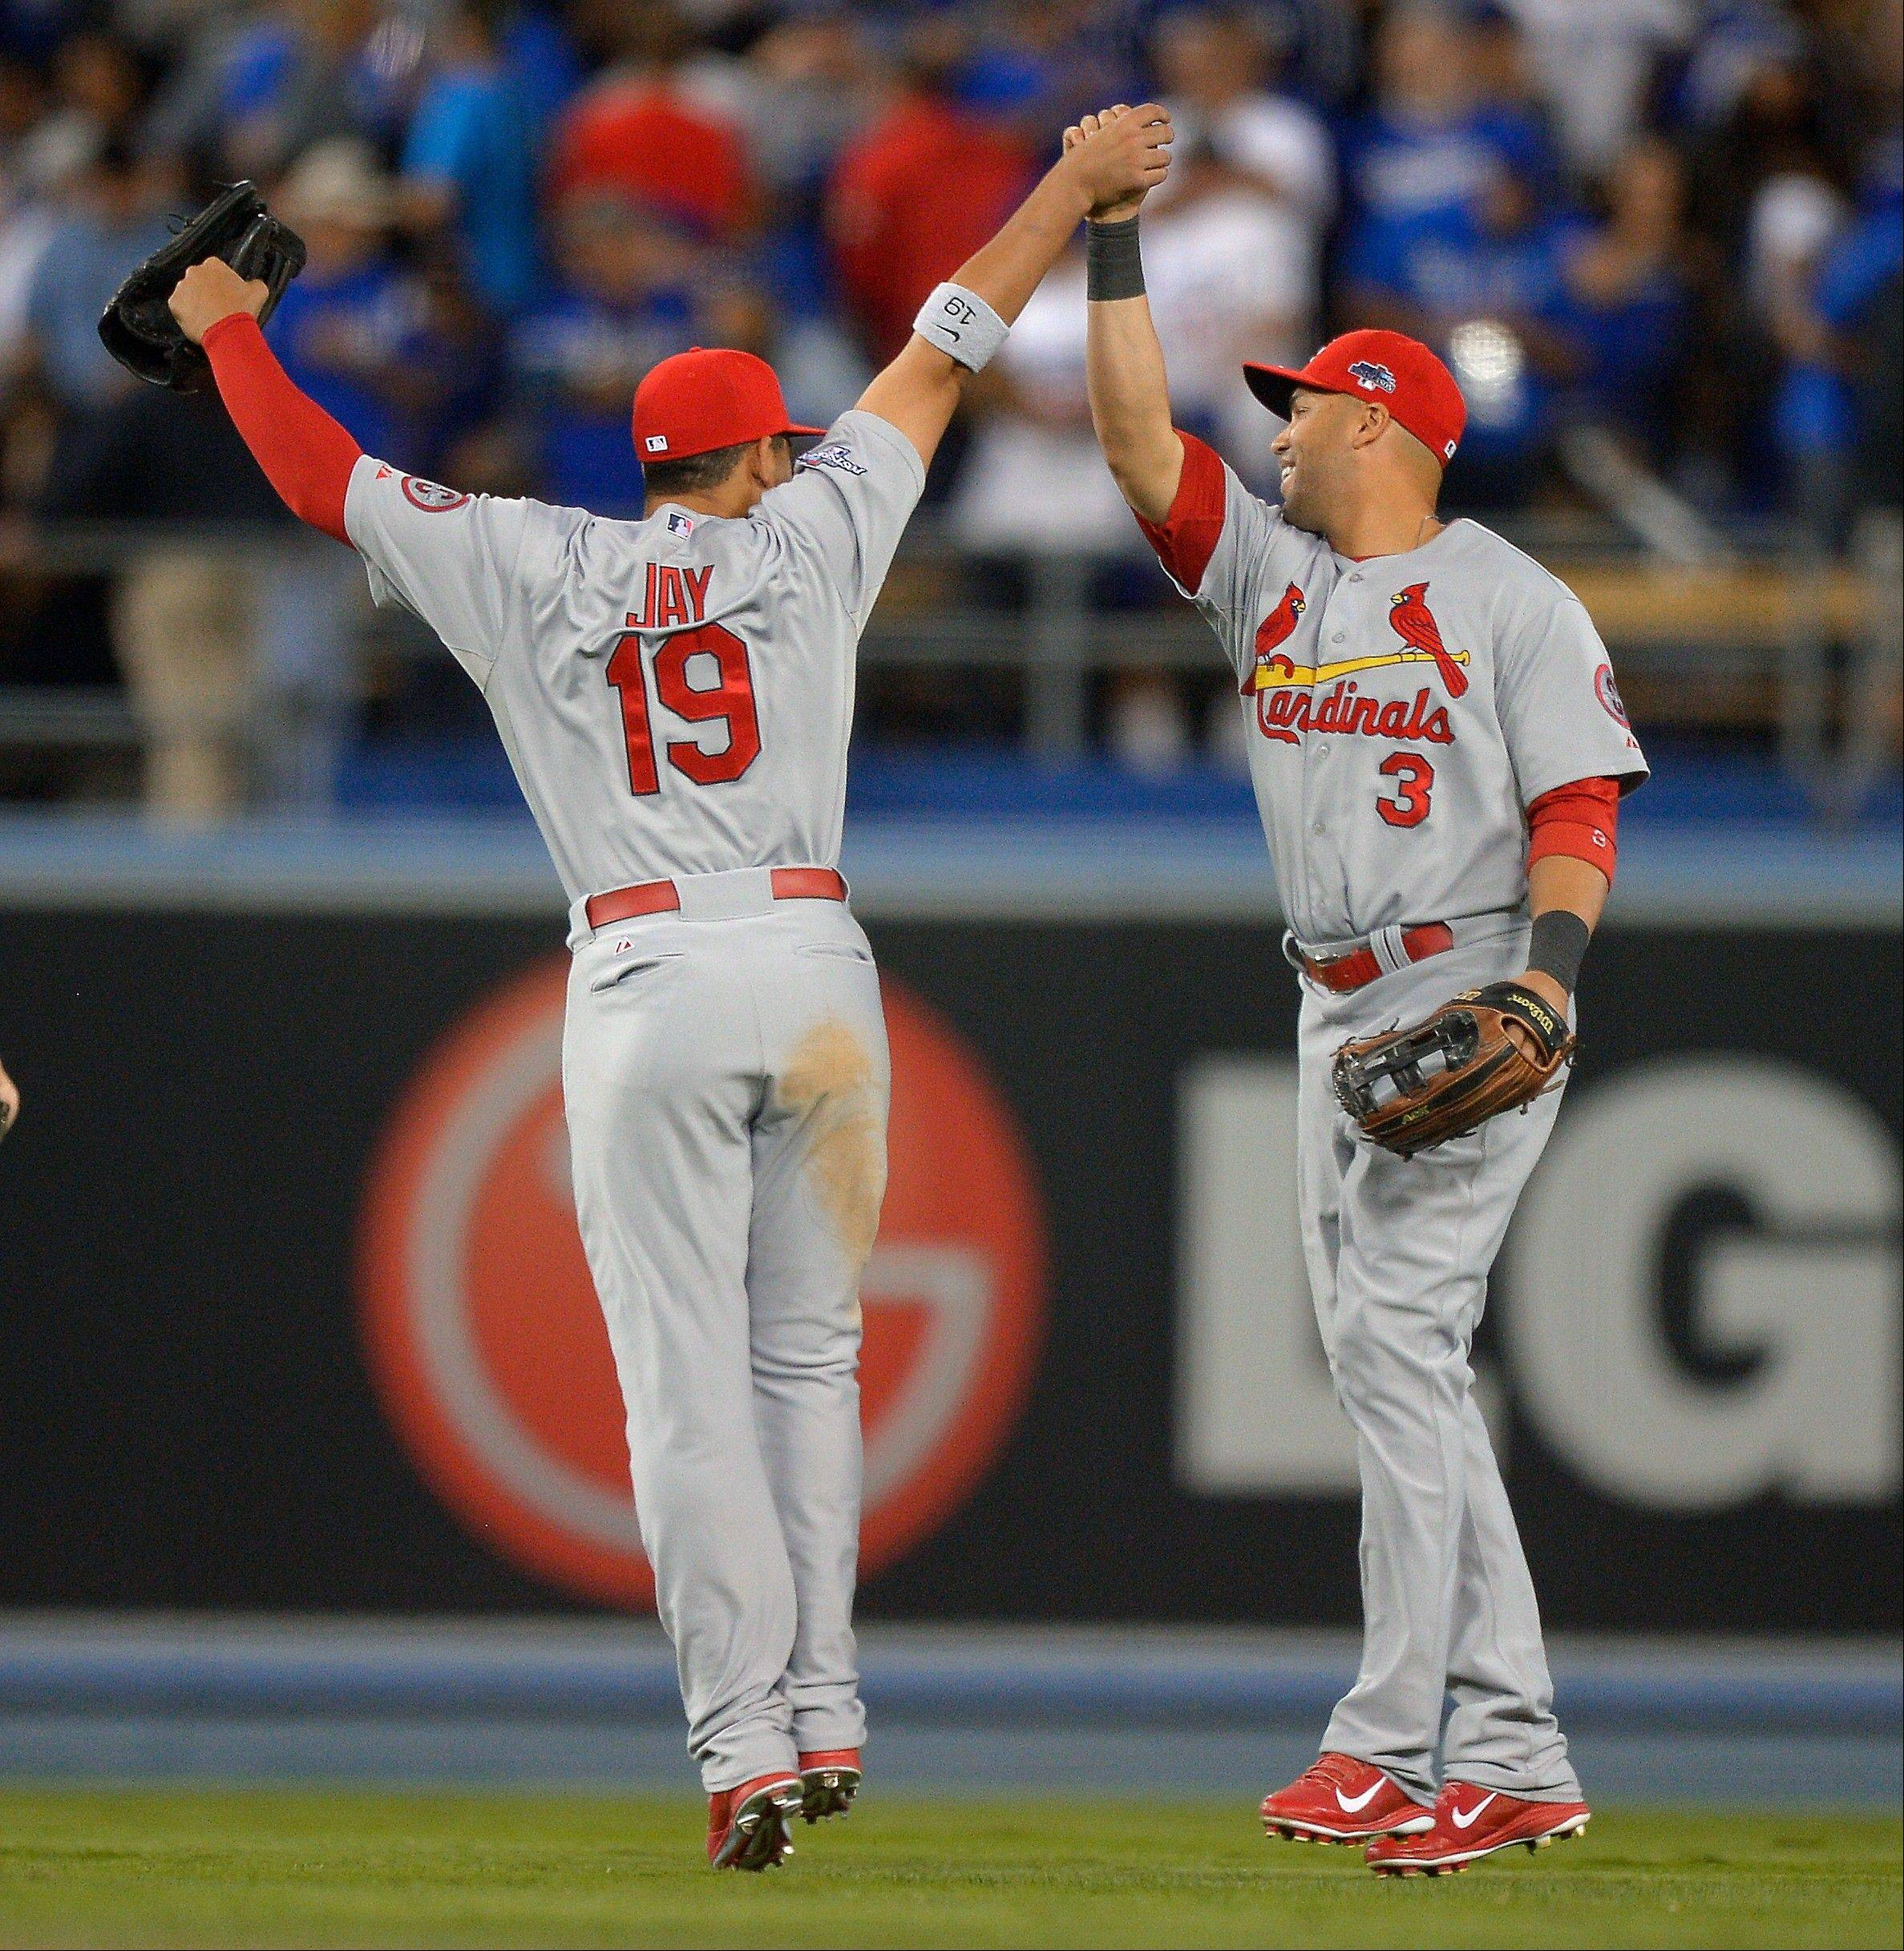 St. Louis Cardinals' Jon Jay and Carlos Beltran, right, celebrate after Game 4 of the National League baseball championship series against the Los Angeles Dodgers Tuesday, Oct. 15, 2013, in Los Angeles. The Cardinals won 4-2 to take a 3-1 lead in the series. (AP Photo/Mark J. Terrill)